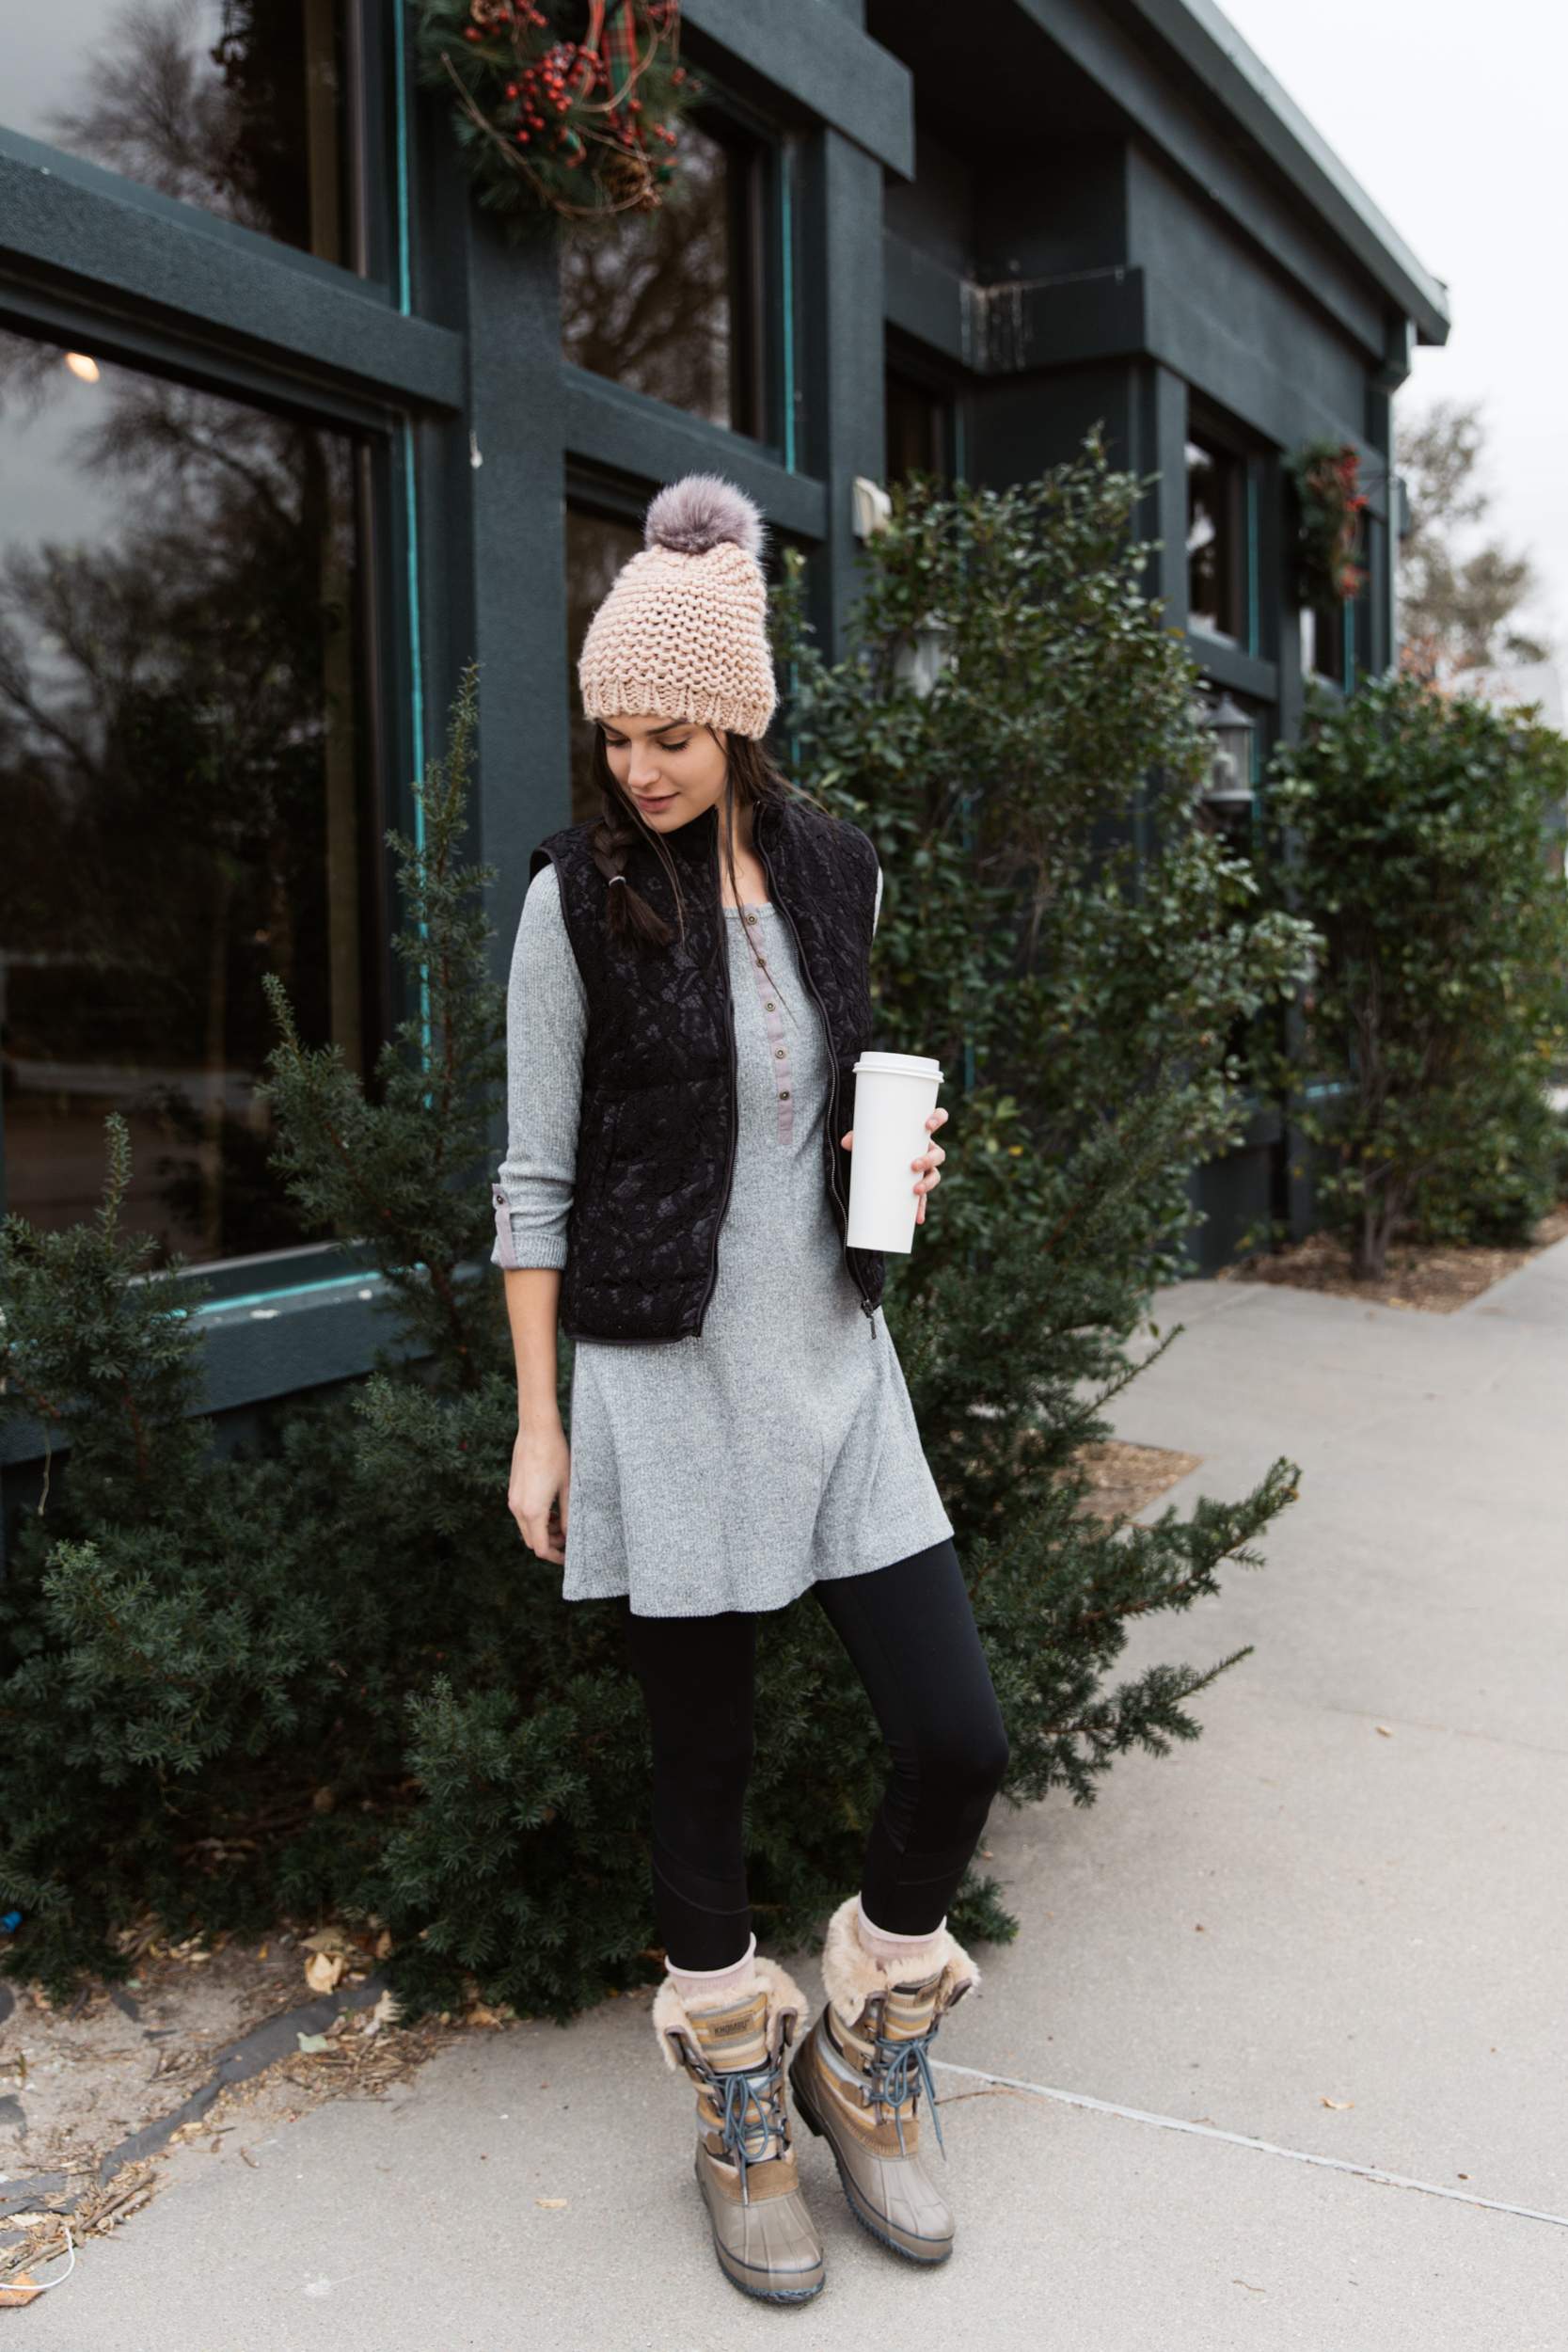 Repurpose your dress this holiday with a warm vest.